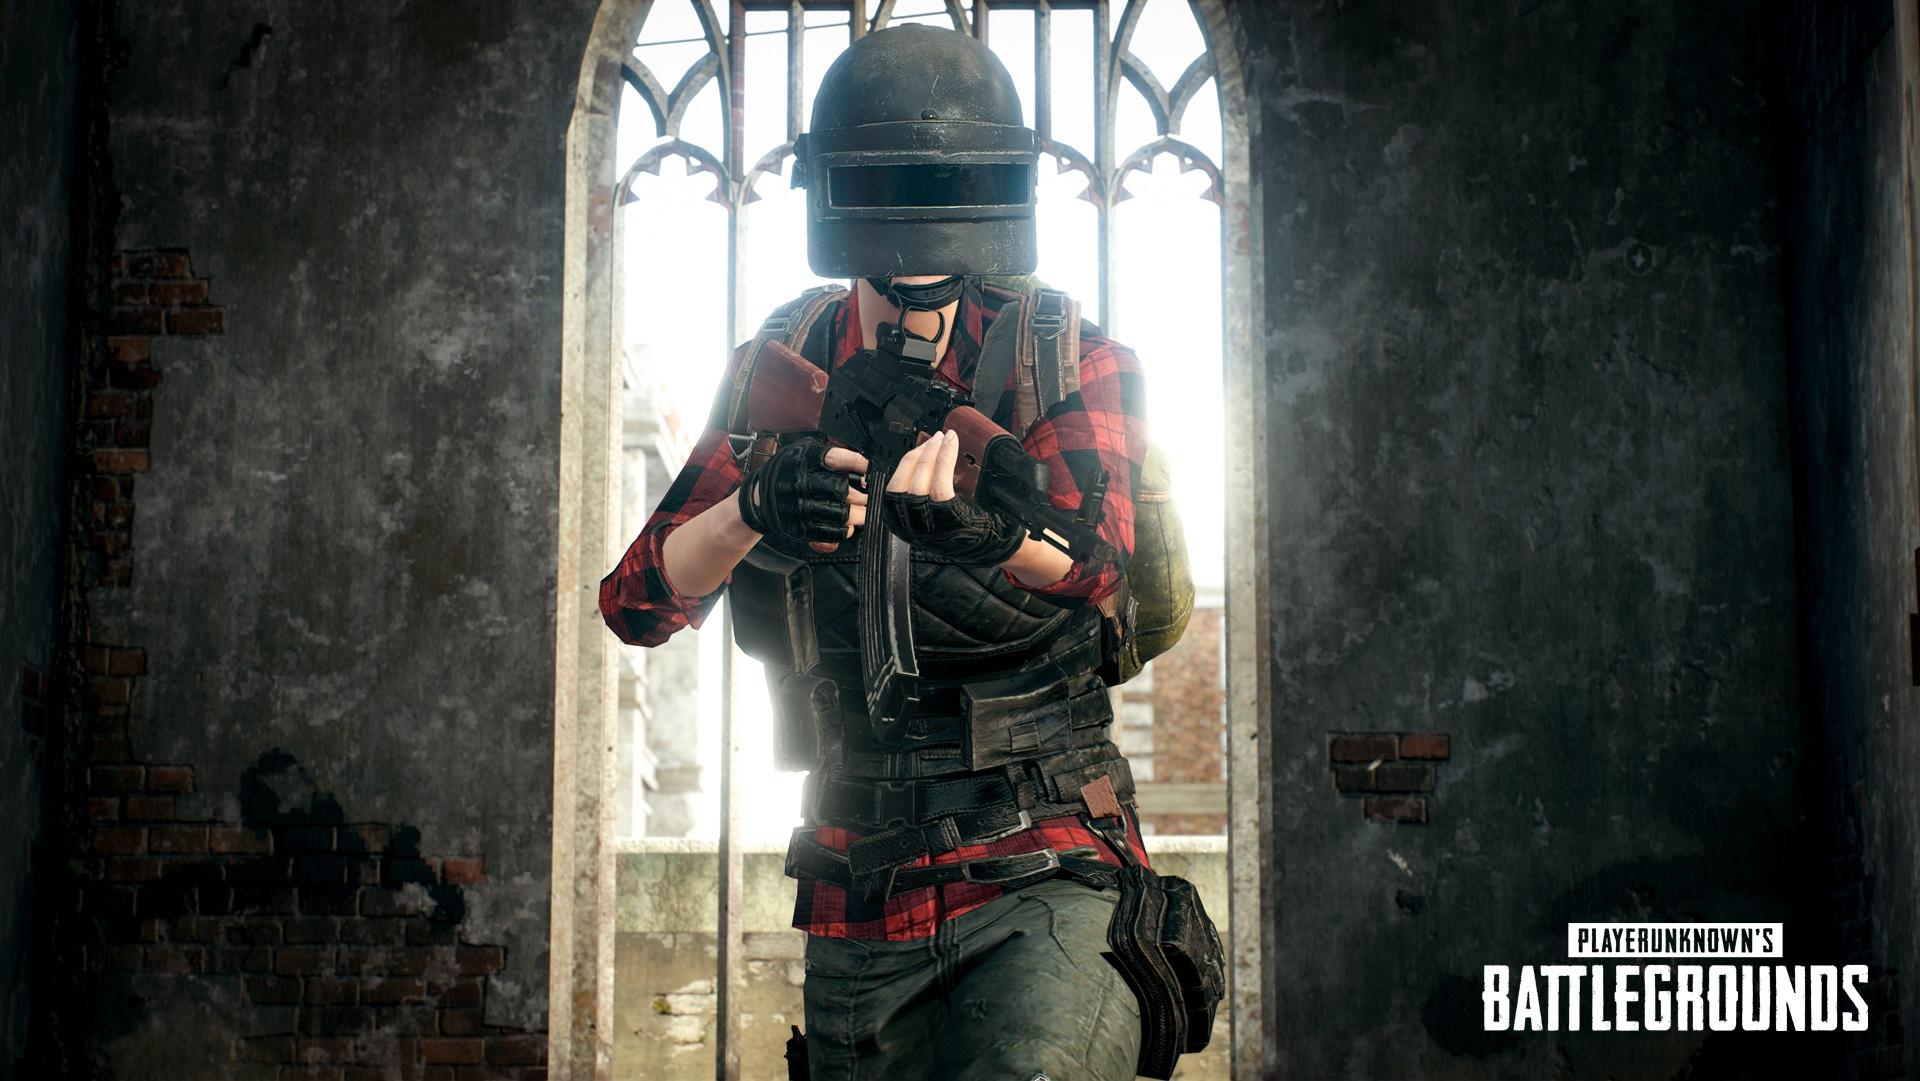 PUBG is going offline today as it implements a huge new update